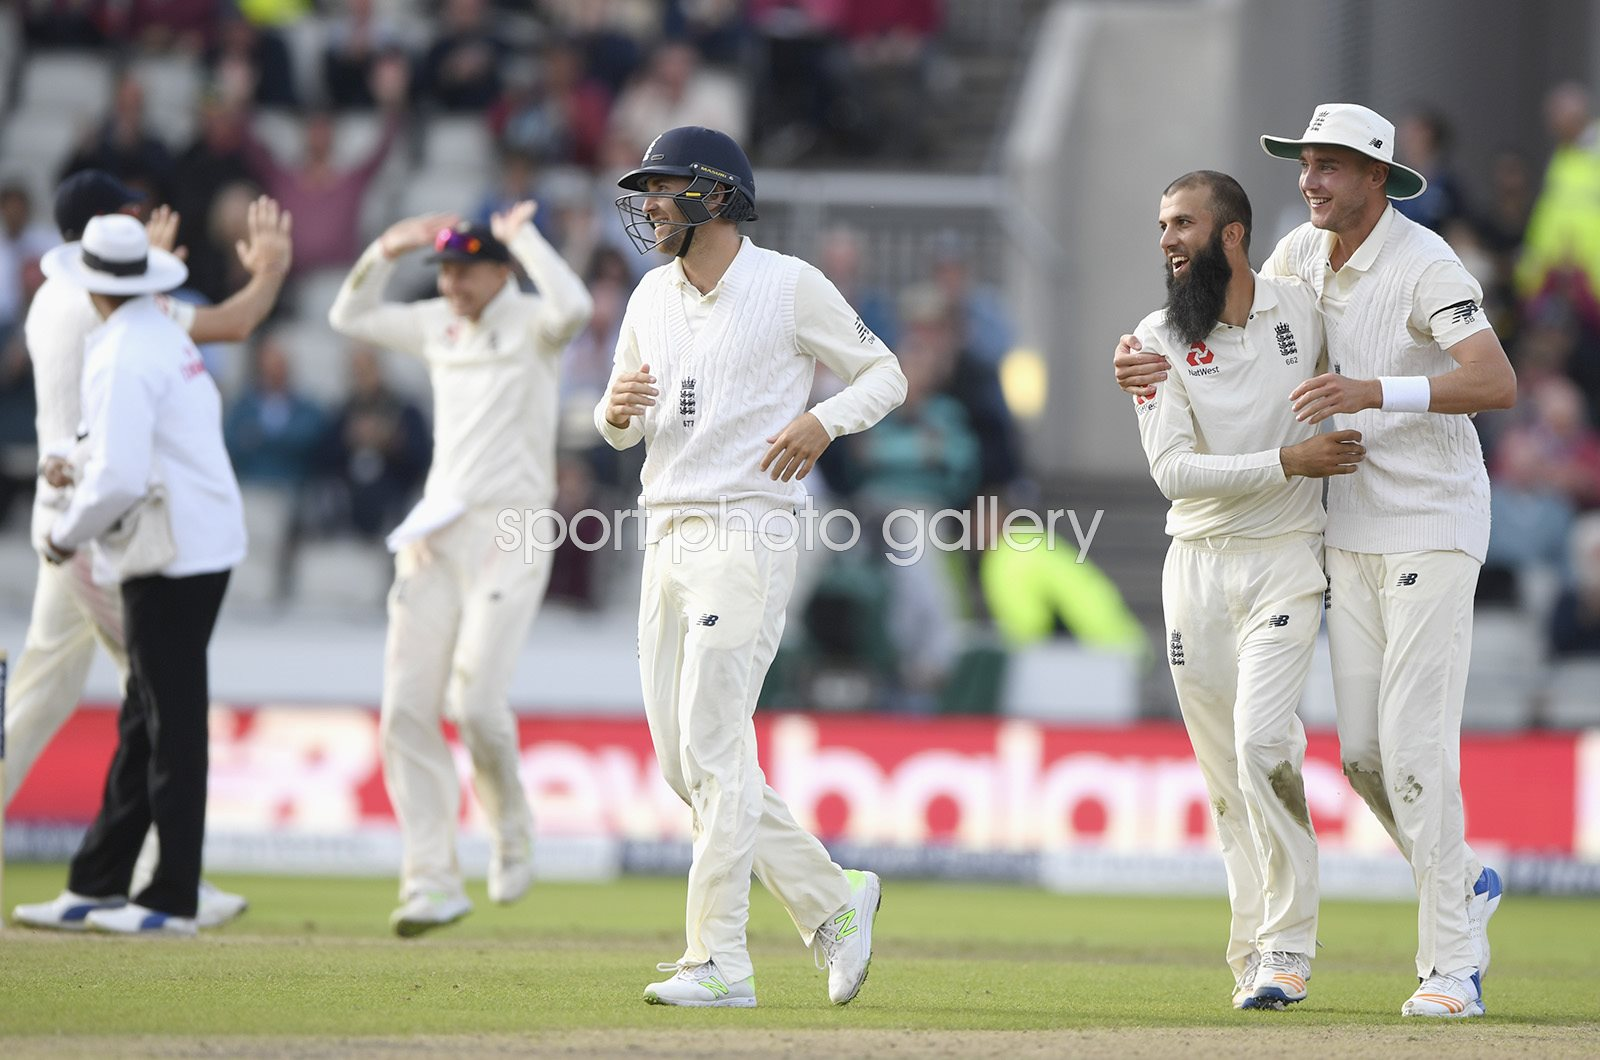 Moeen Ali England winning wicket v South Africa Old Trafford 2017